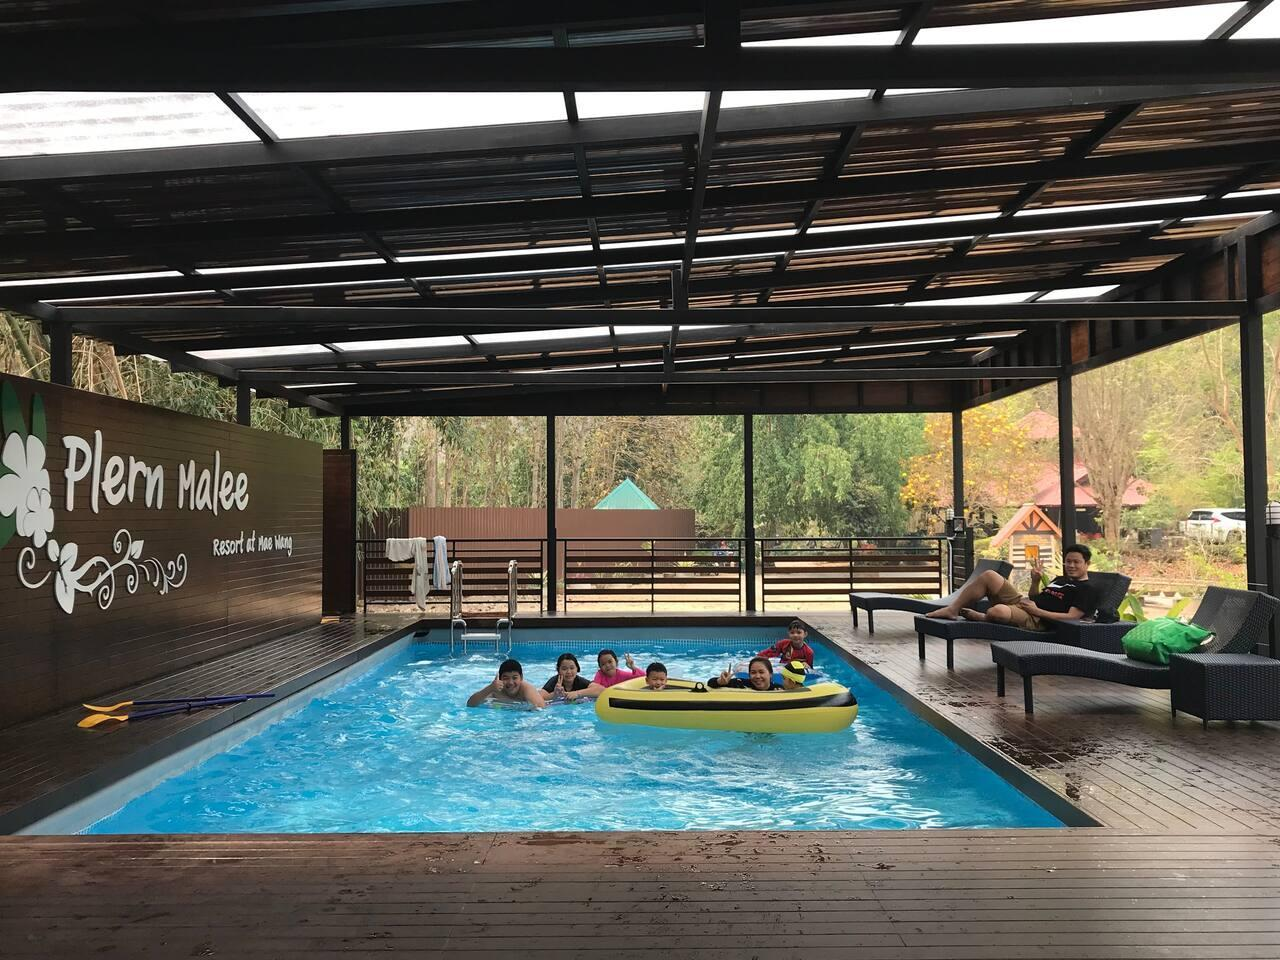 Plern Malee Pool View   For 2 People